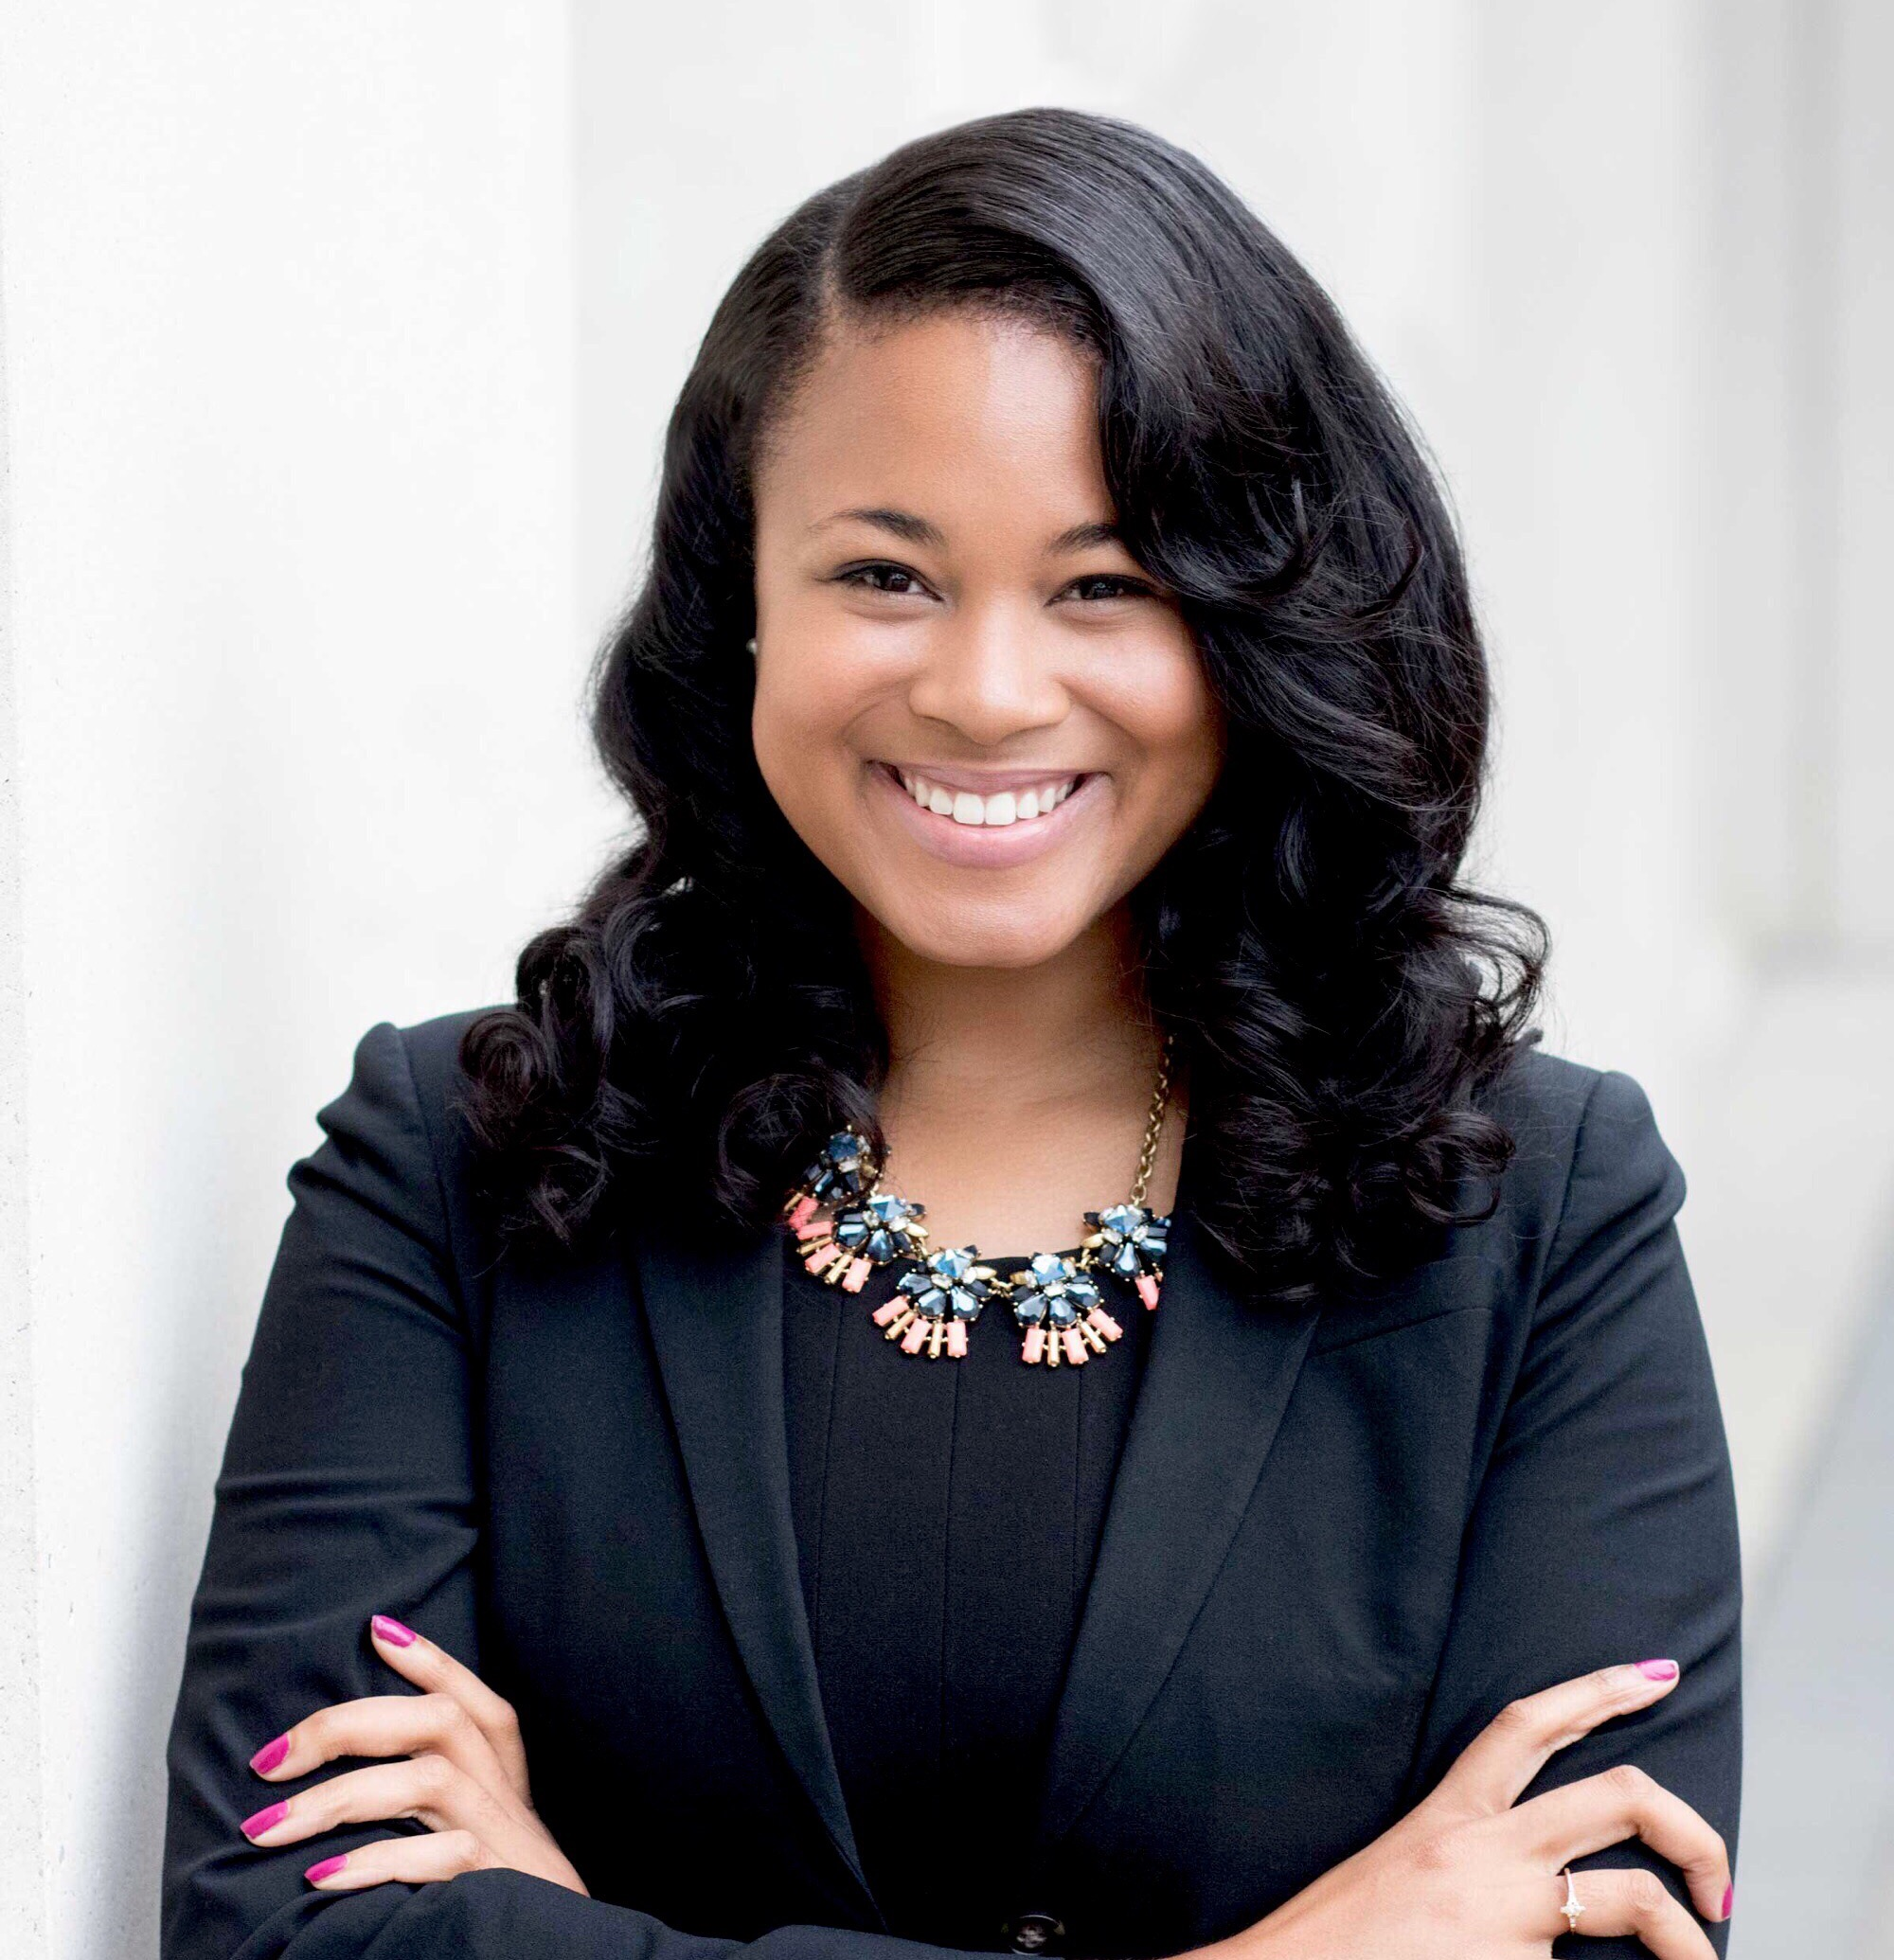 kelli daniels.   Graduate of Spelman College where she received a B.S. in Economics and a graduate of The University of Georgia where she received a M.S in Kinesiology, Sports Management. She is currently the program specialist for The Arthur M. Blank Family Foundation living in Atlanta, GA. Kelli is passionate about Jesus Christ, youth development, serving the community, and discovering ways to improve the environment of low socioeconomic communities.